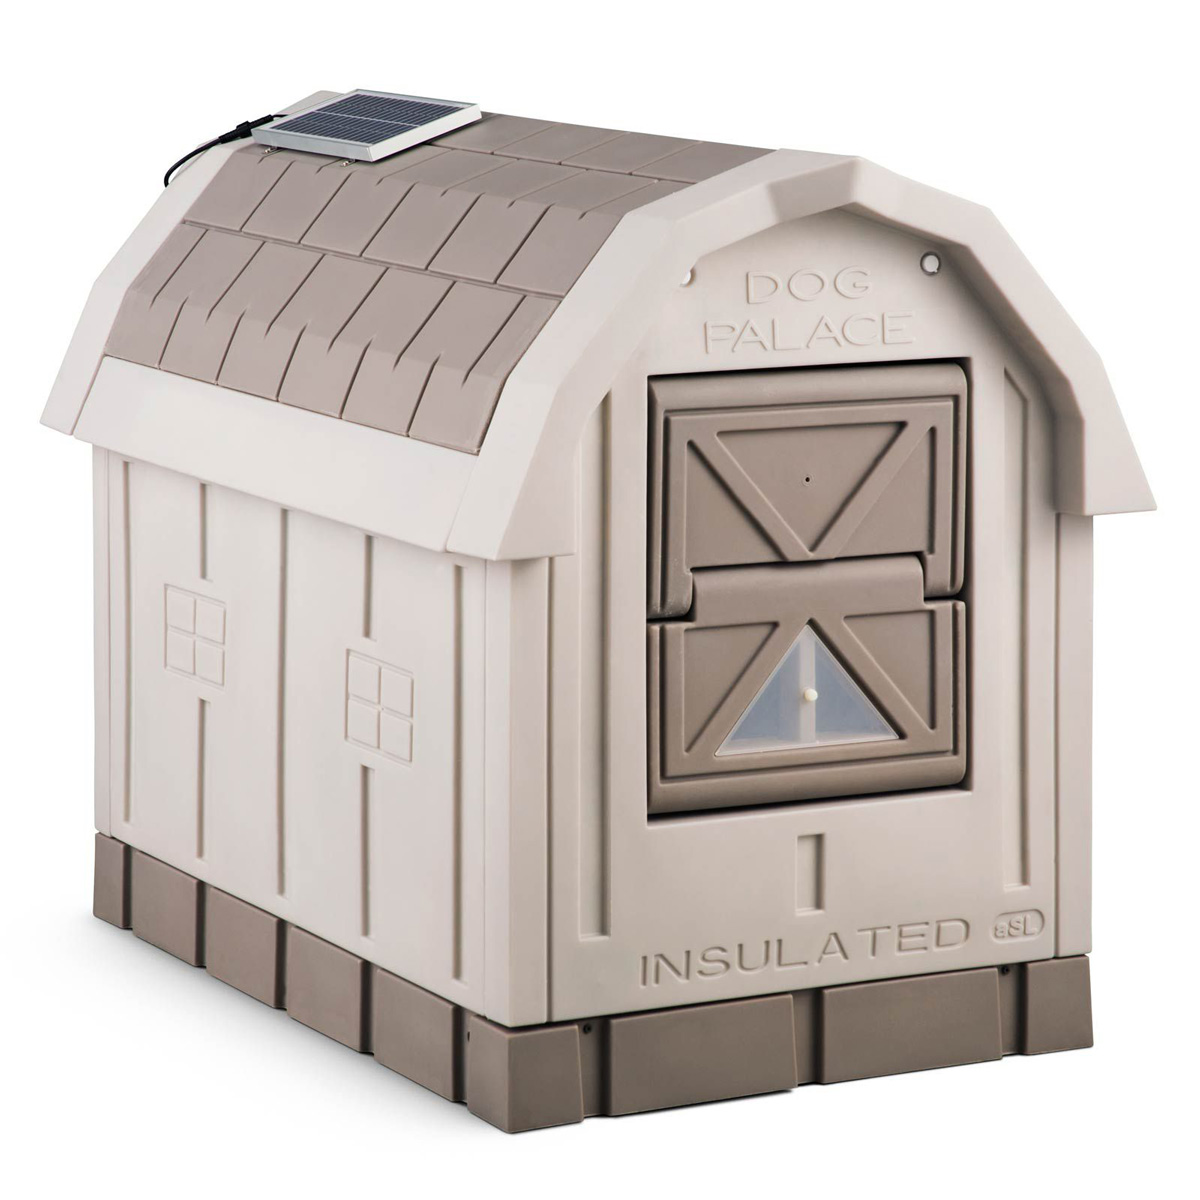 Outdoor cat house best insulated outdoor cat houses for Insulated outdoor dog house